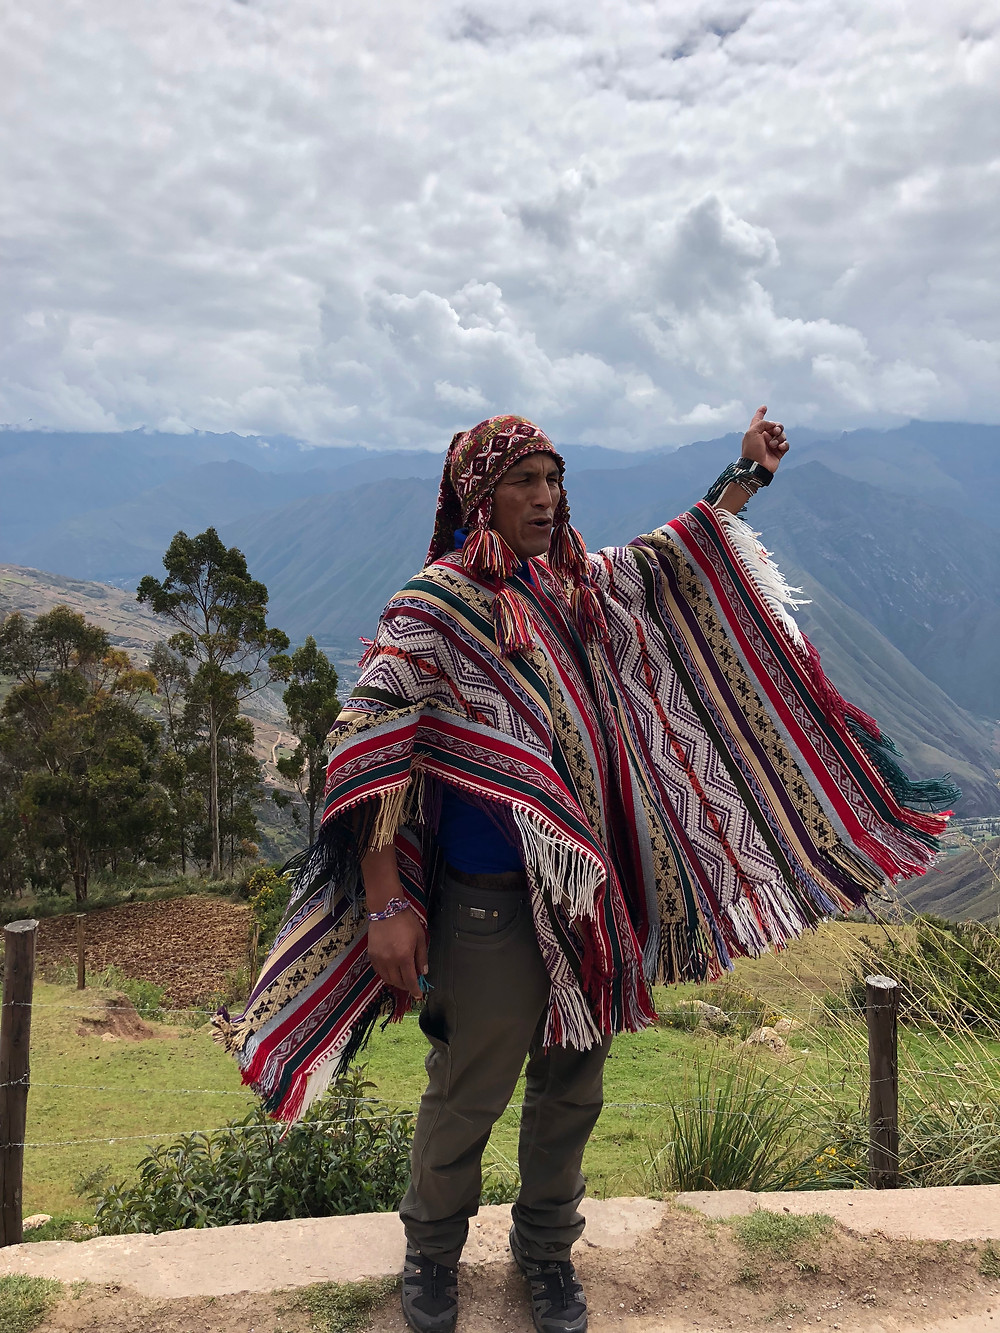 Valentin of Pachamama Journeys, out local Peru tour guide that everyone fell in love with.